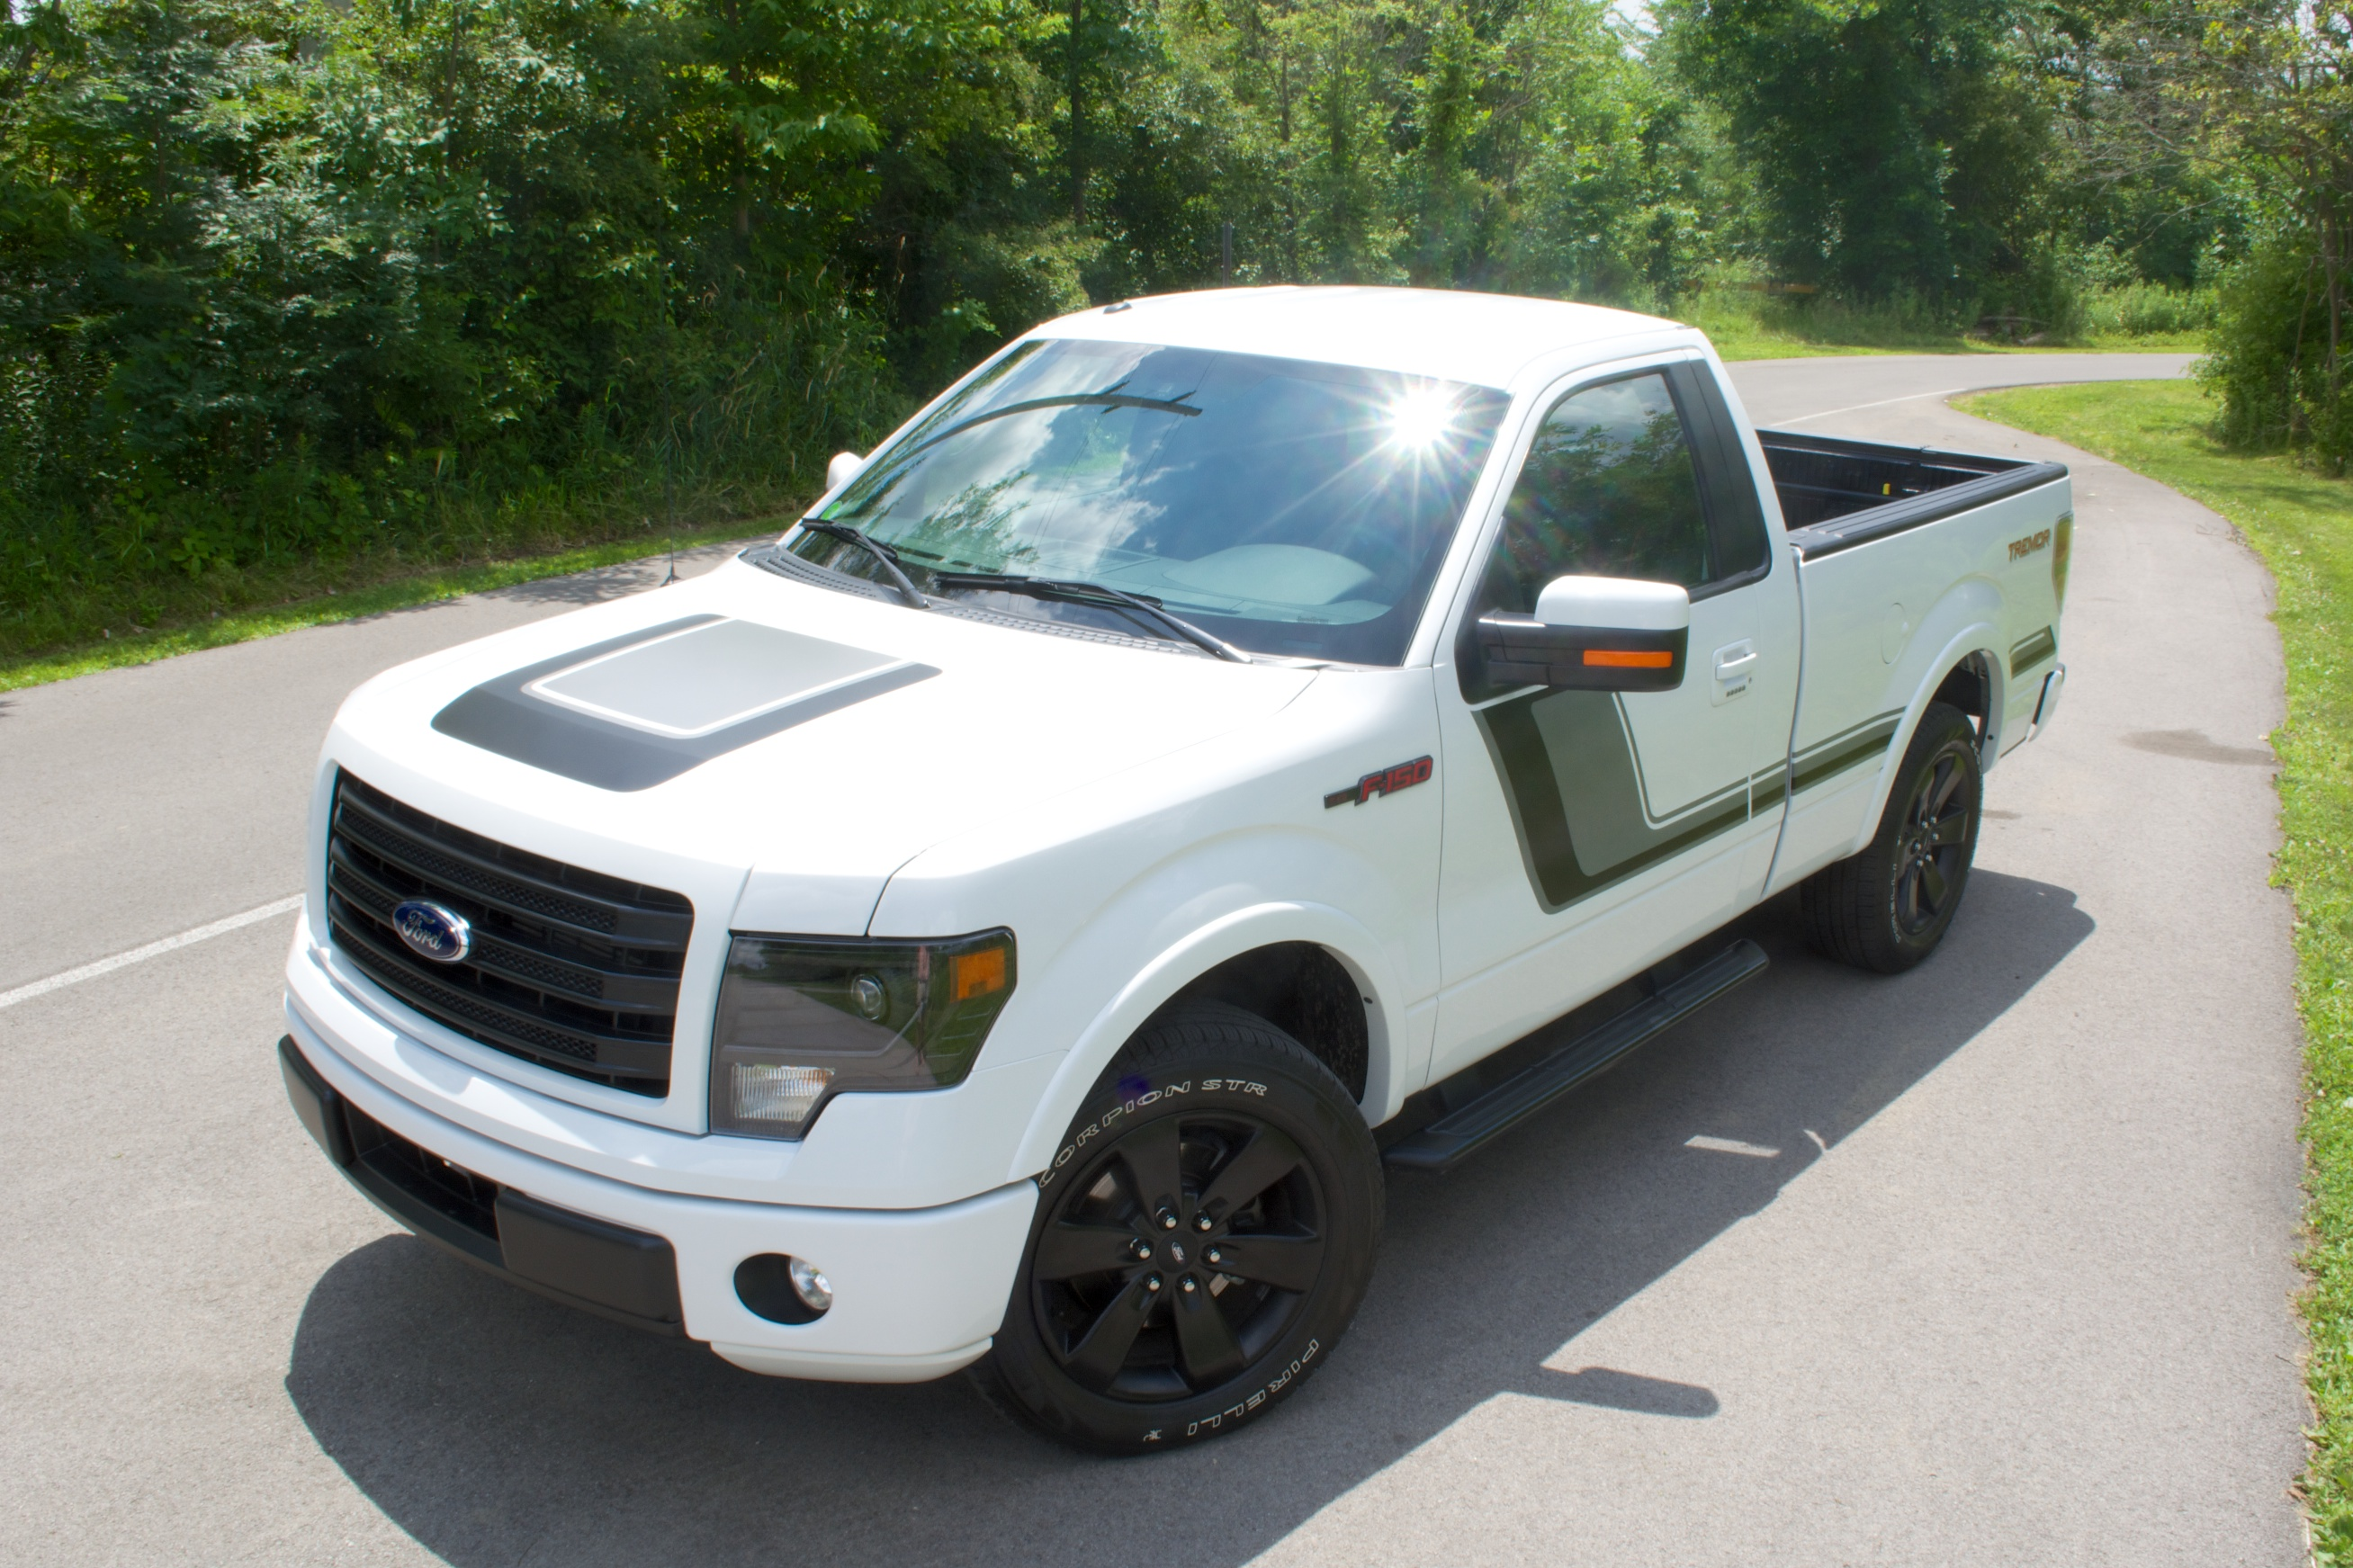 Ford F 150 Tremor >> 2014 Ford F-150 Tremor Review - 21 - Motor Review